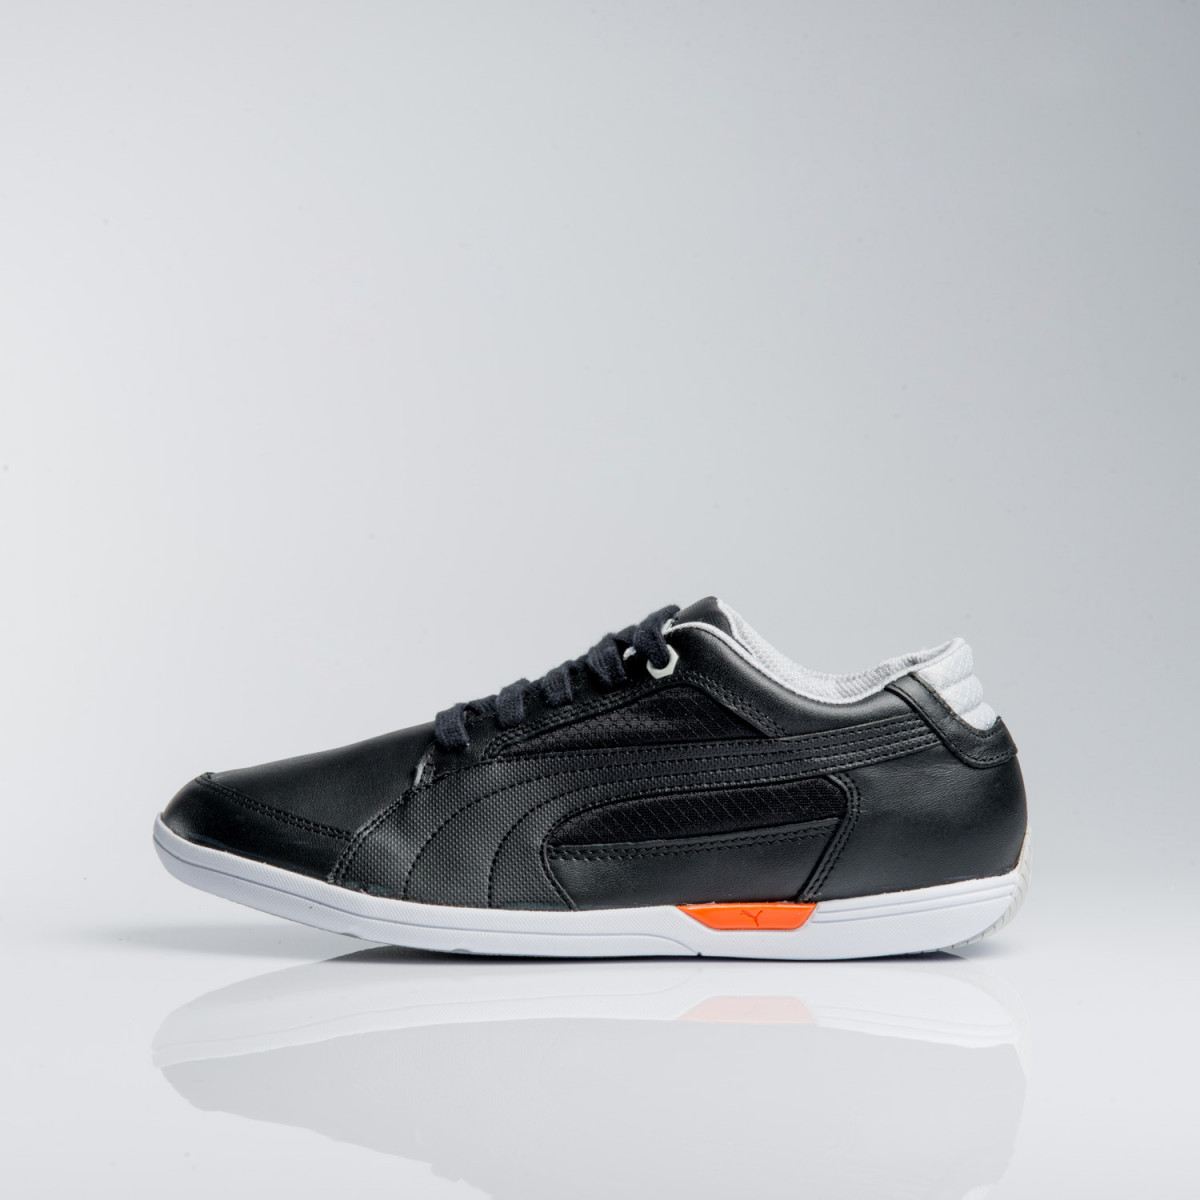 ZAPATILLAS PUMA PLANO LEATHER